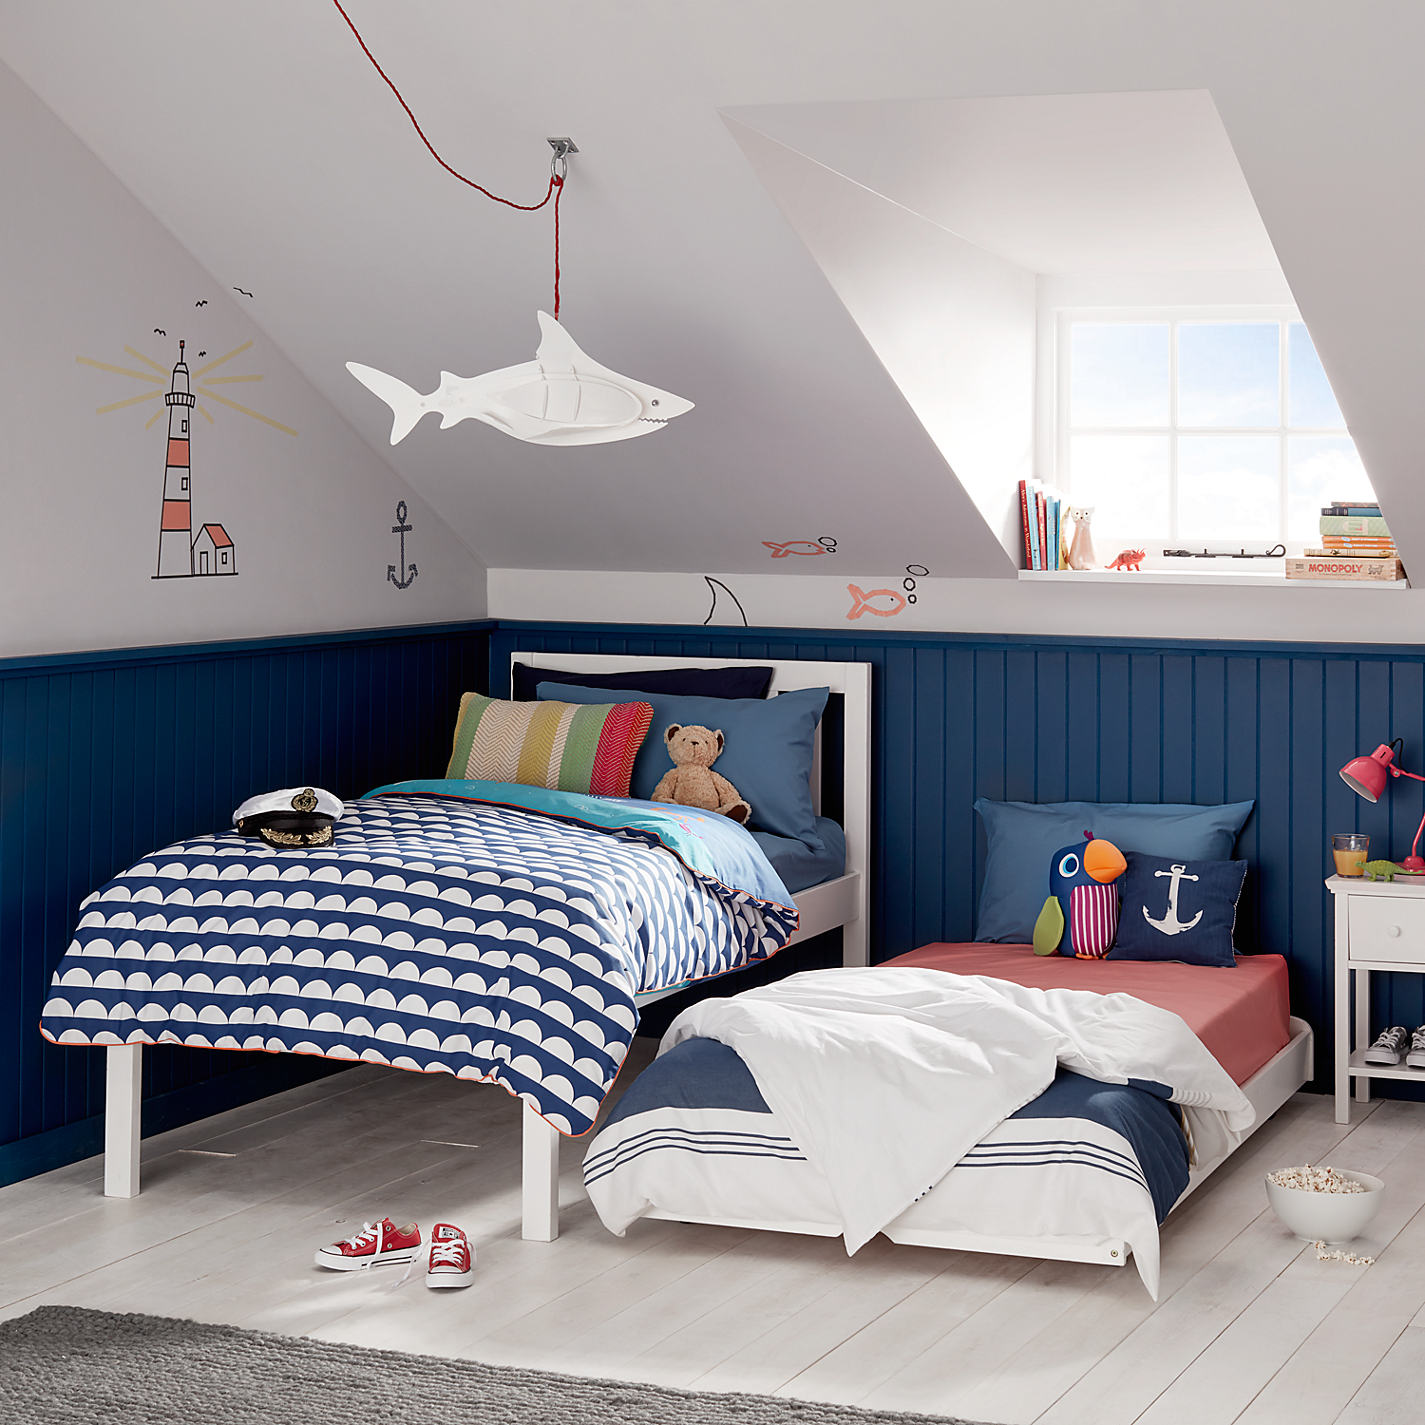 John lewis childrens bedroom furniture -  Buy John Lewis Wilton Child Compliant Trundle Guest Bed With Open Spring Mattresses Single Online